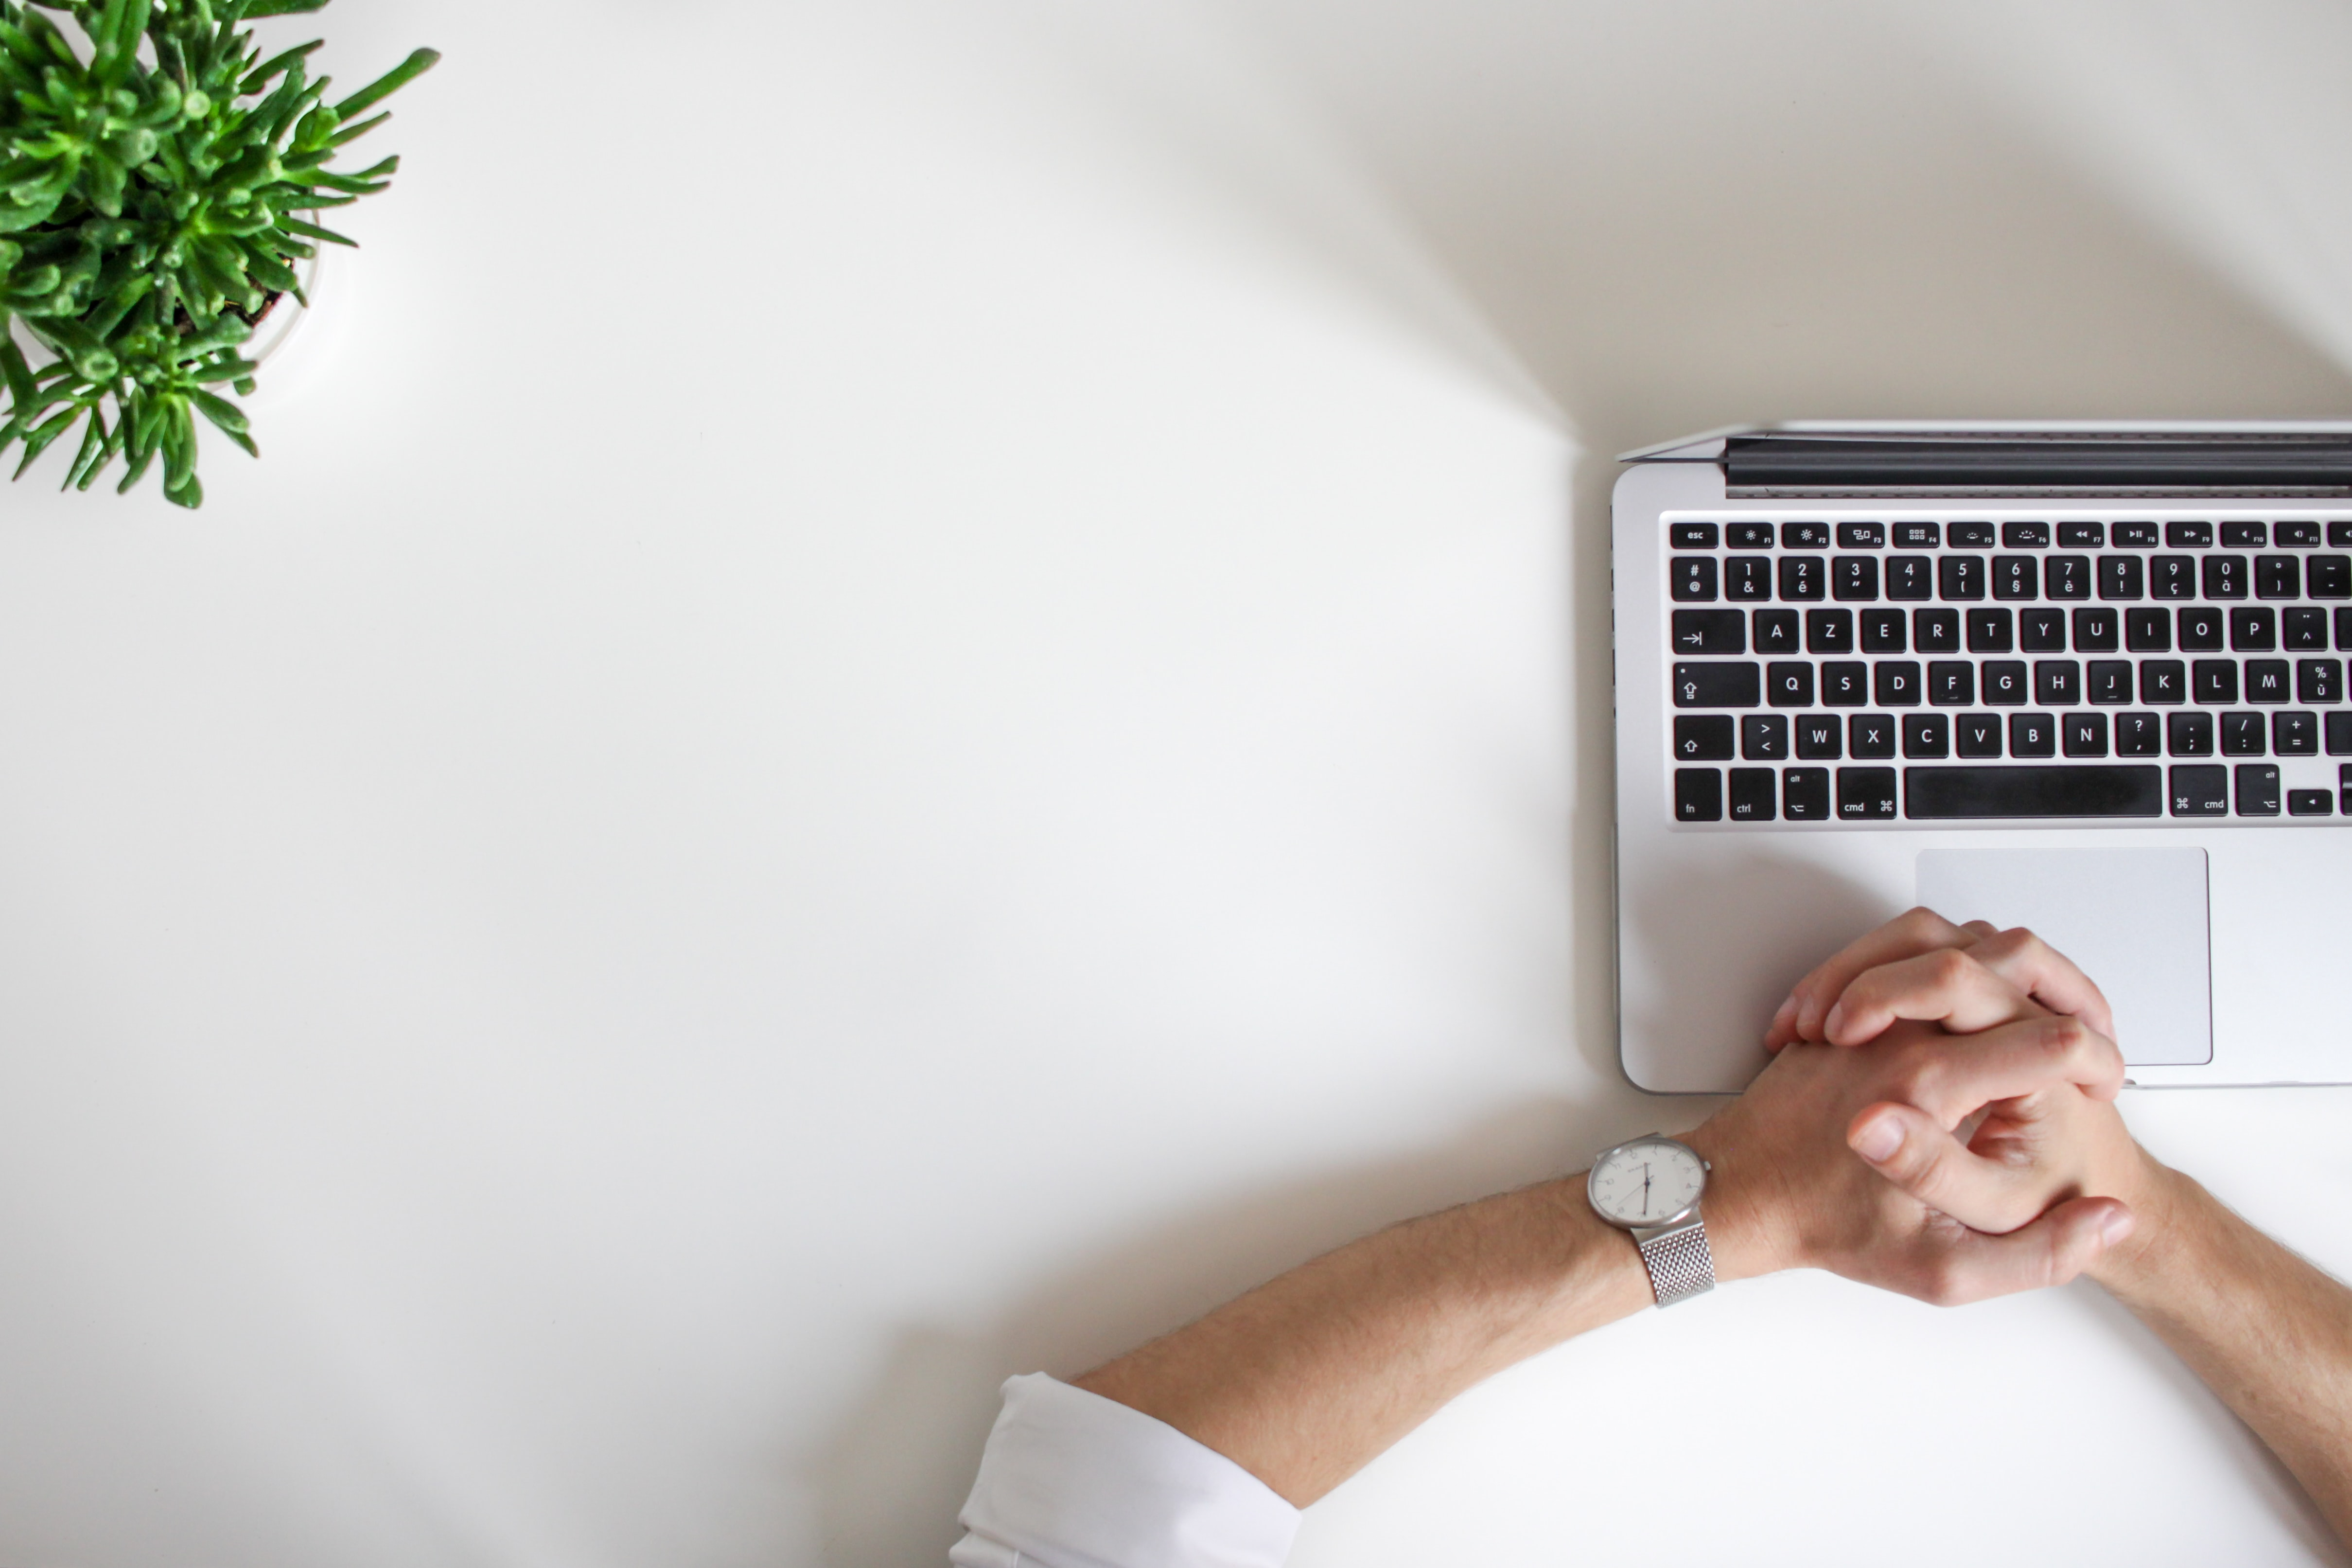 Person with clasped hands in front of laptop, possibly working remotely from home